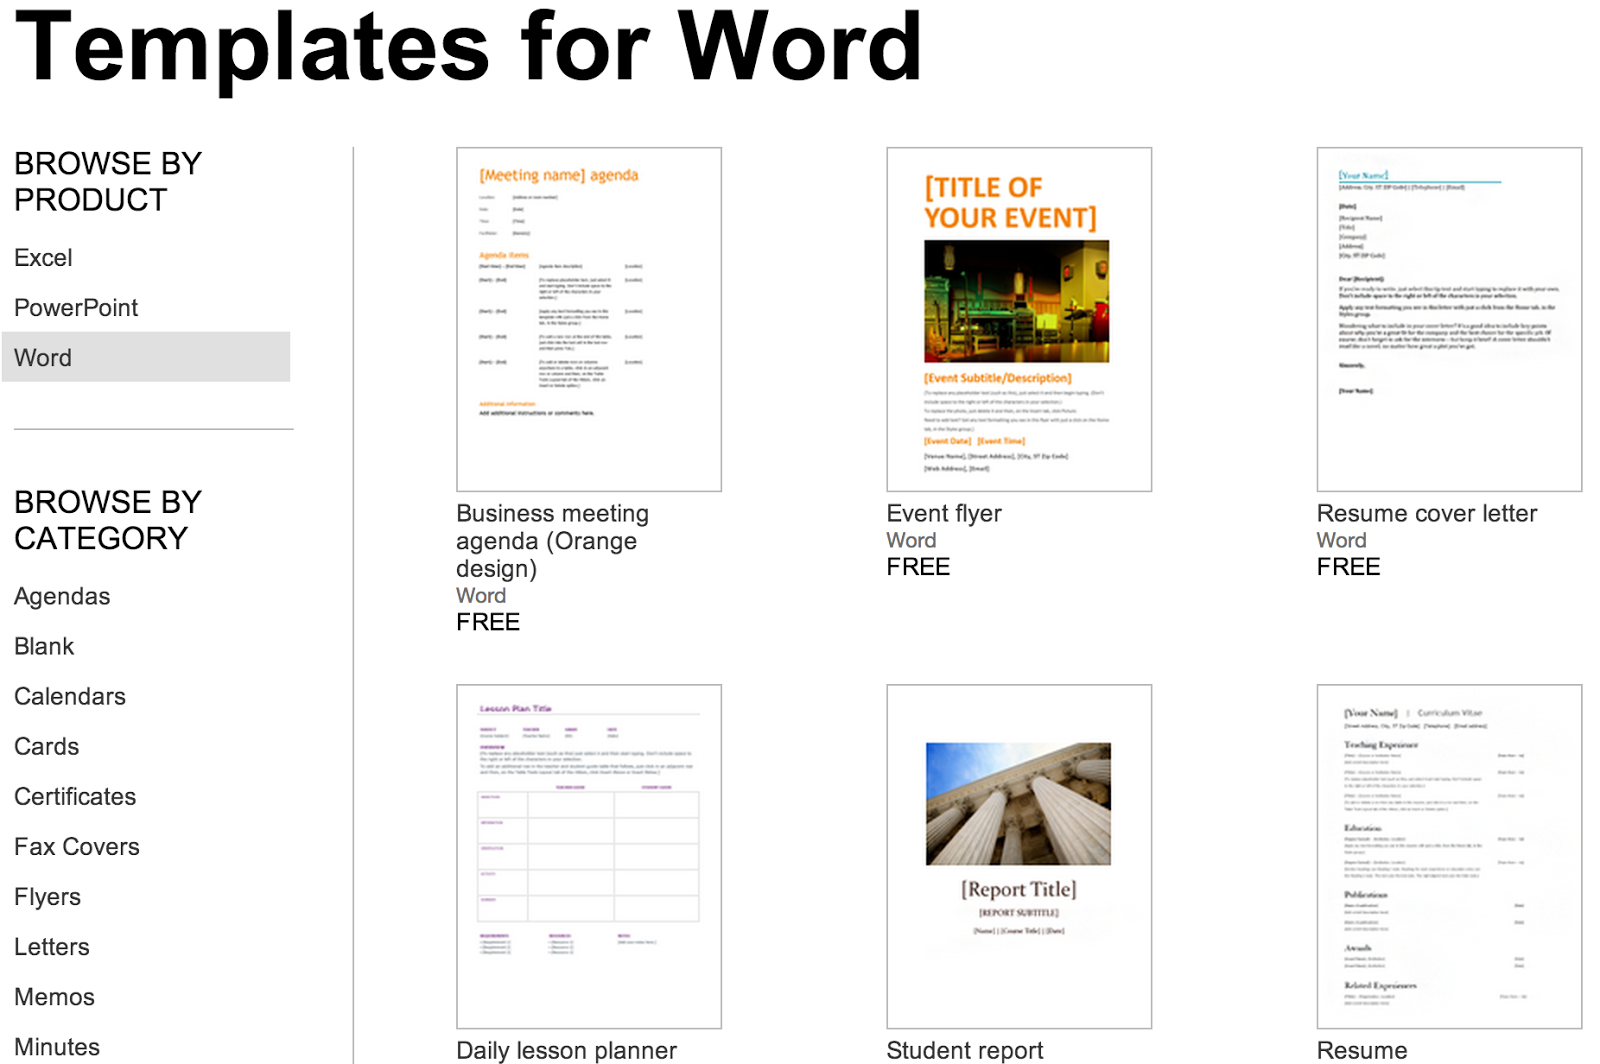 Over 250 Free Microsoft Office Templates & Documents